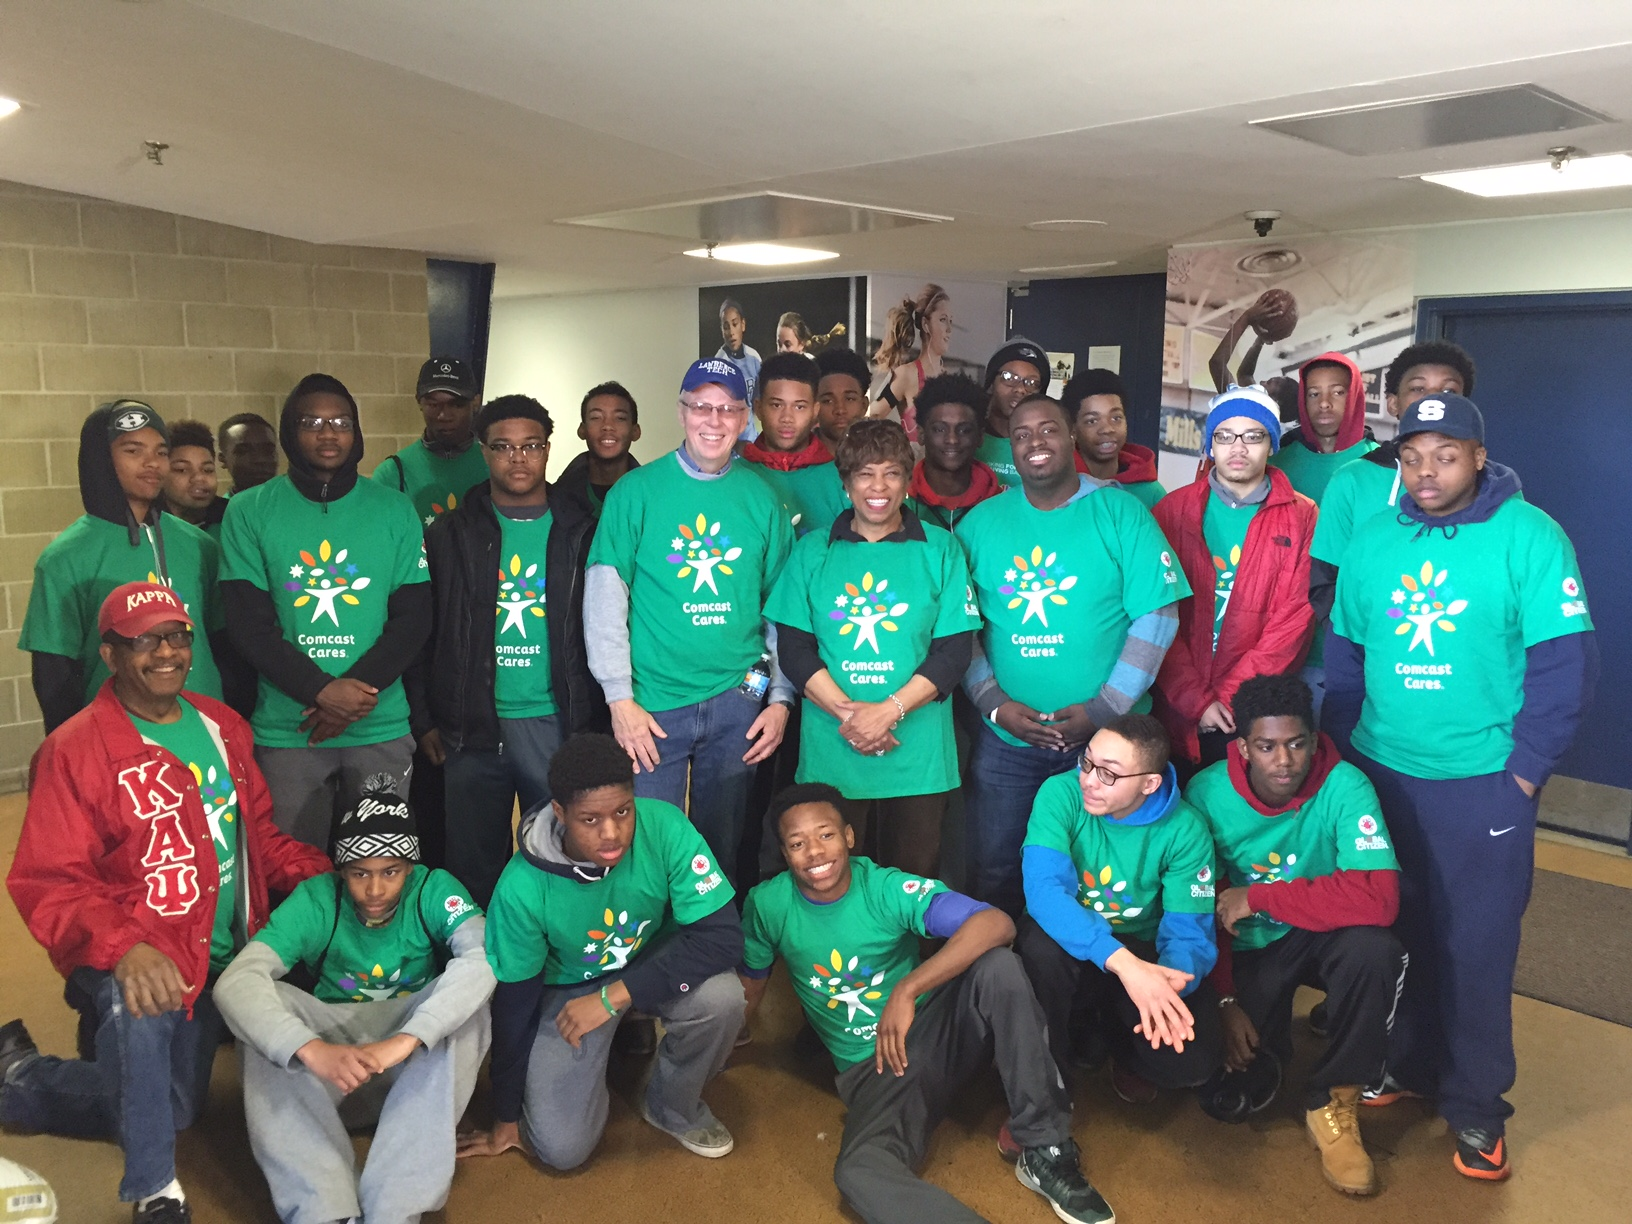 Kappa League  at Comcast Cares Day